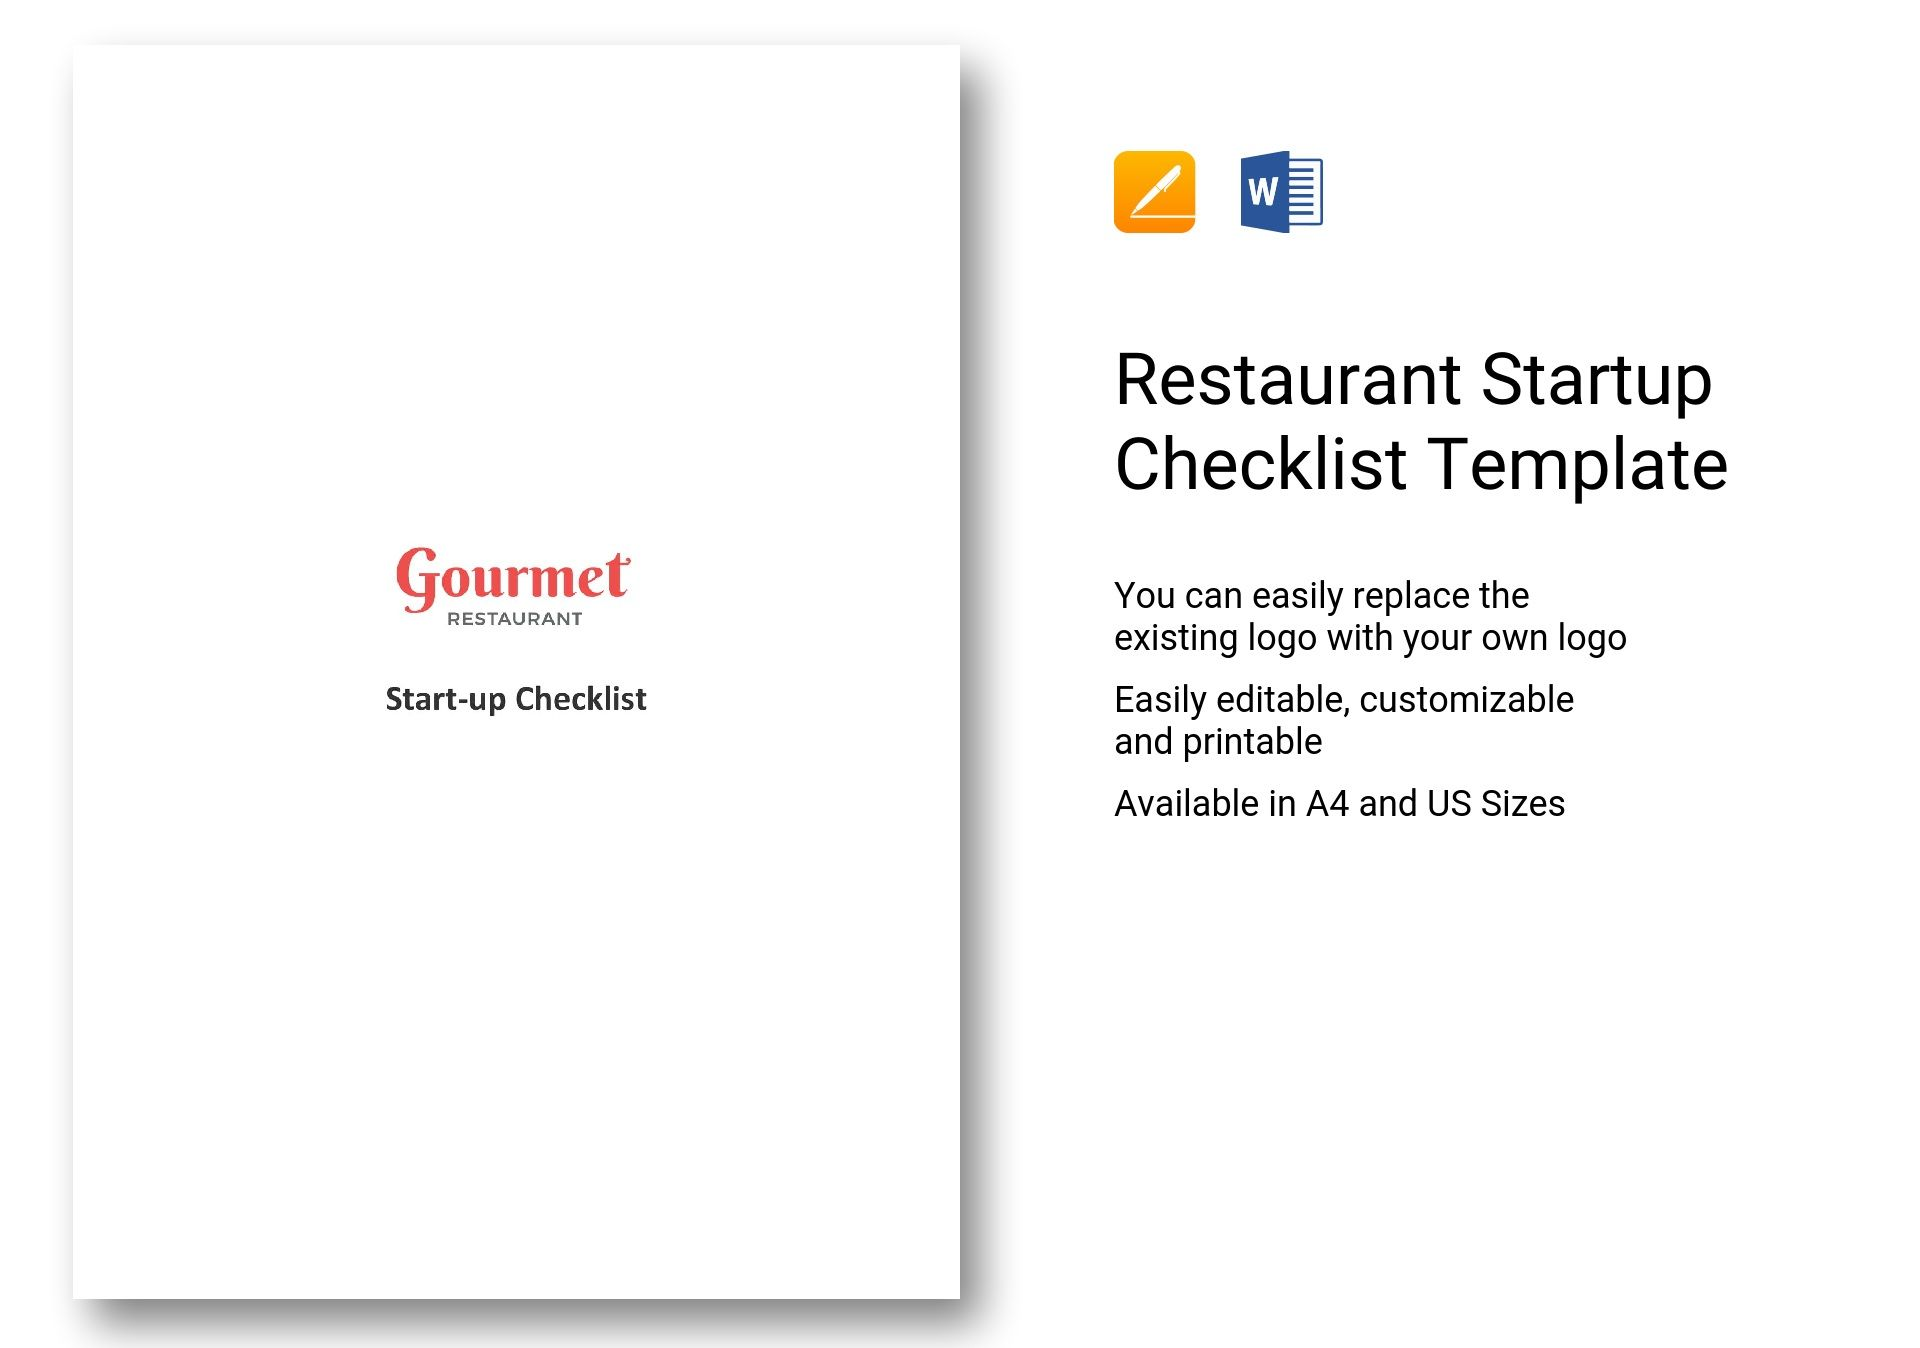 restaurant startup checklist template in word apple pages. Black Bedroom Furniture Sets. Home Design Ideas